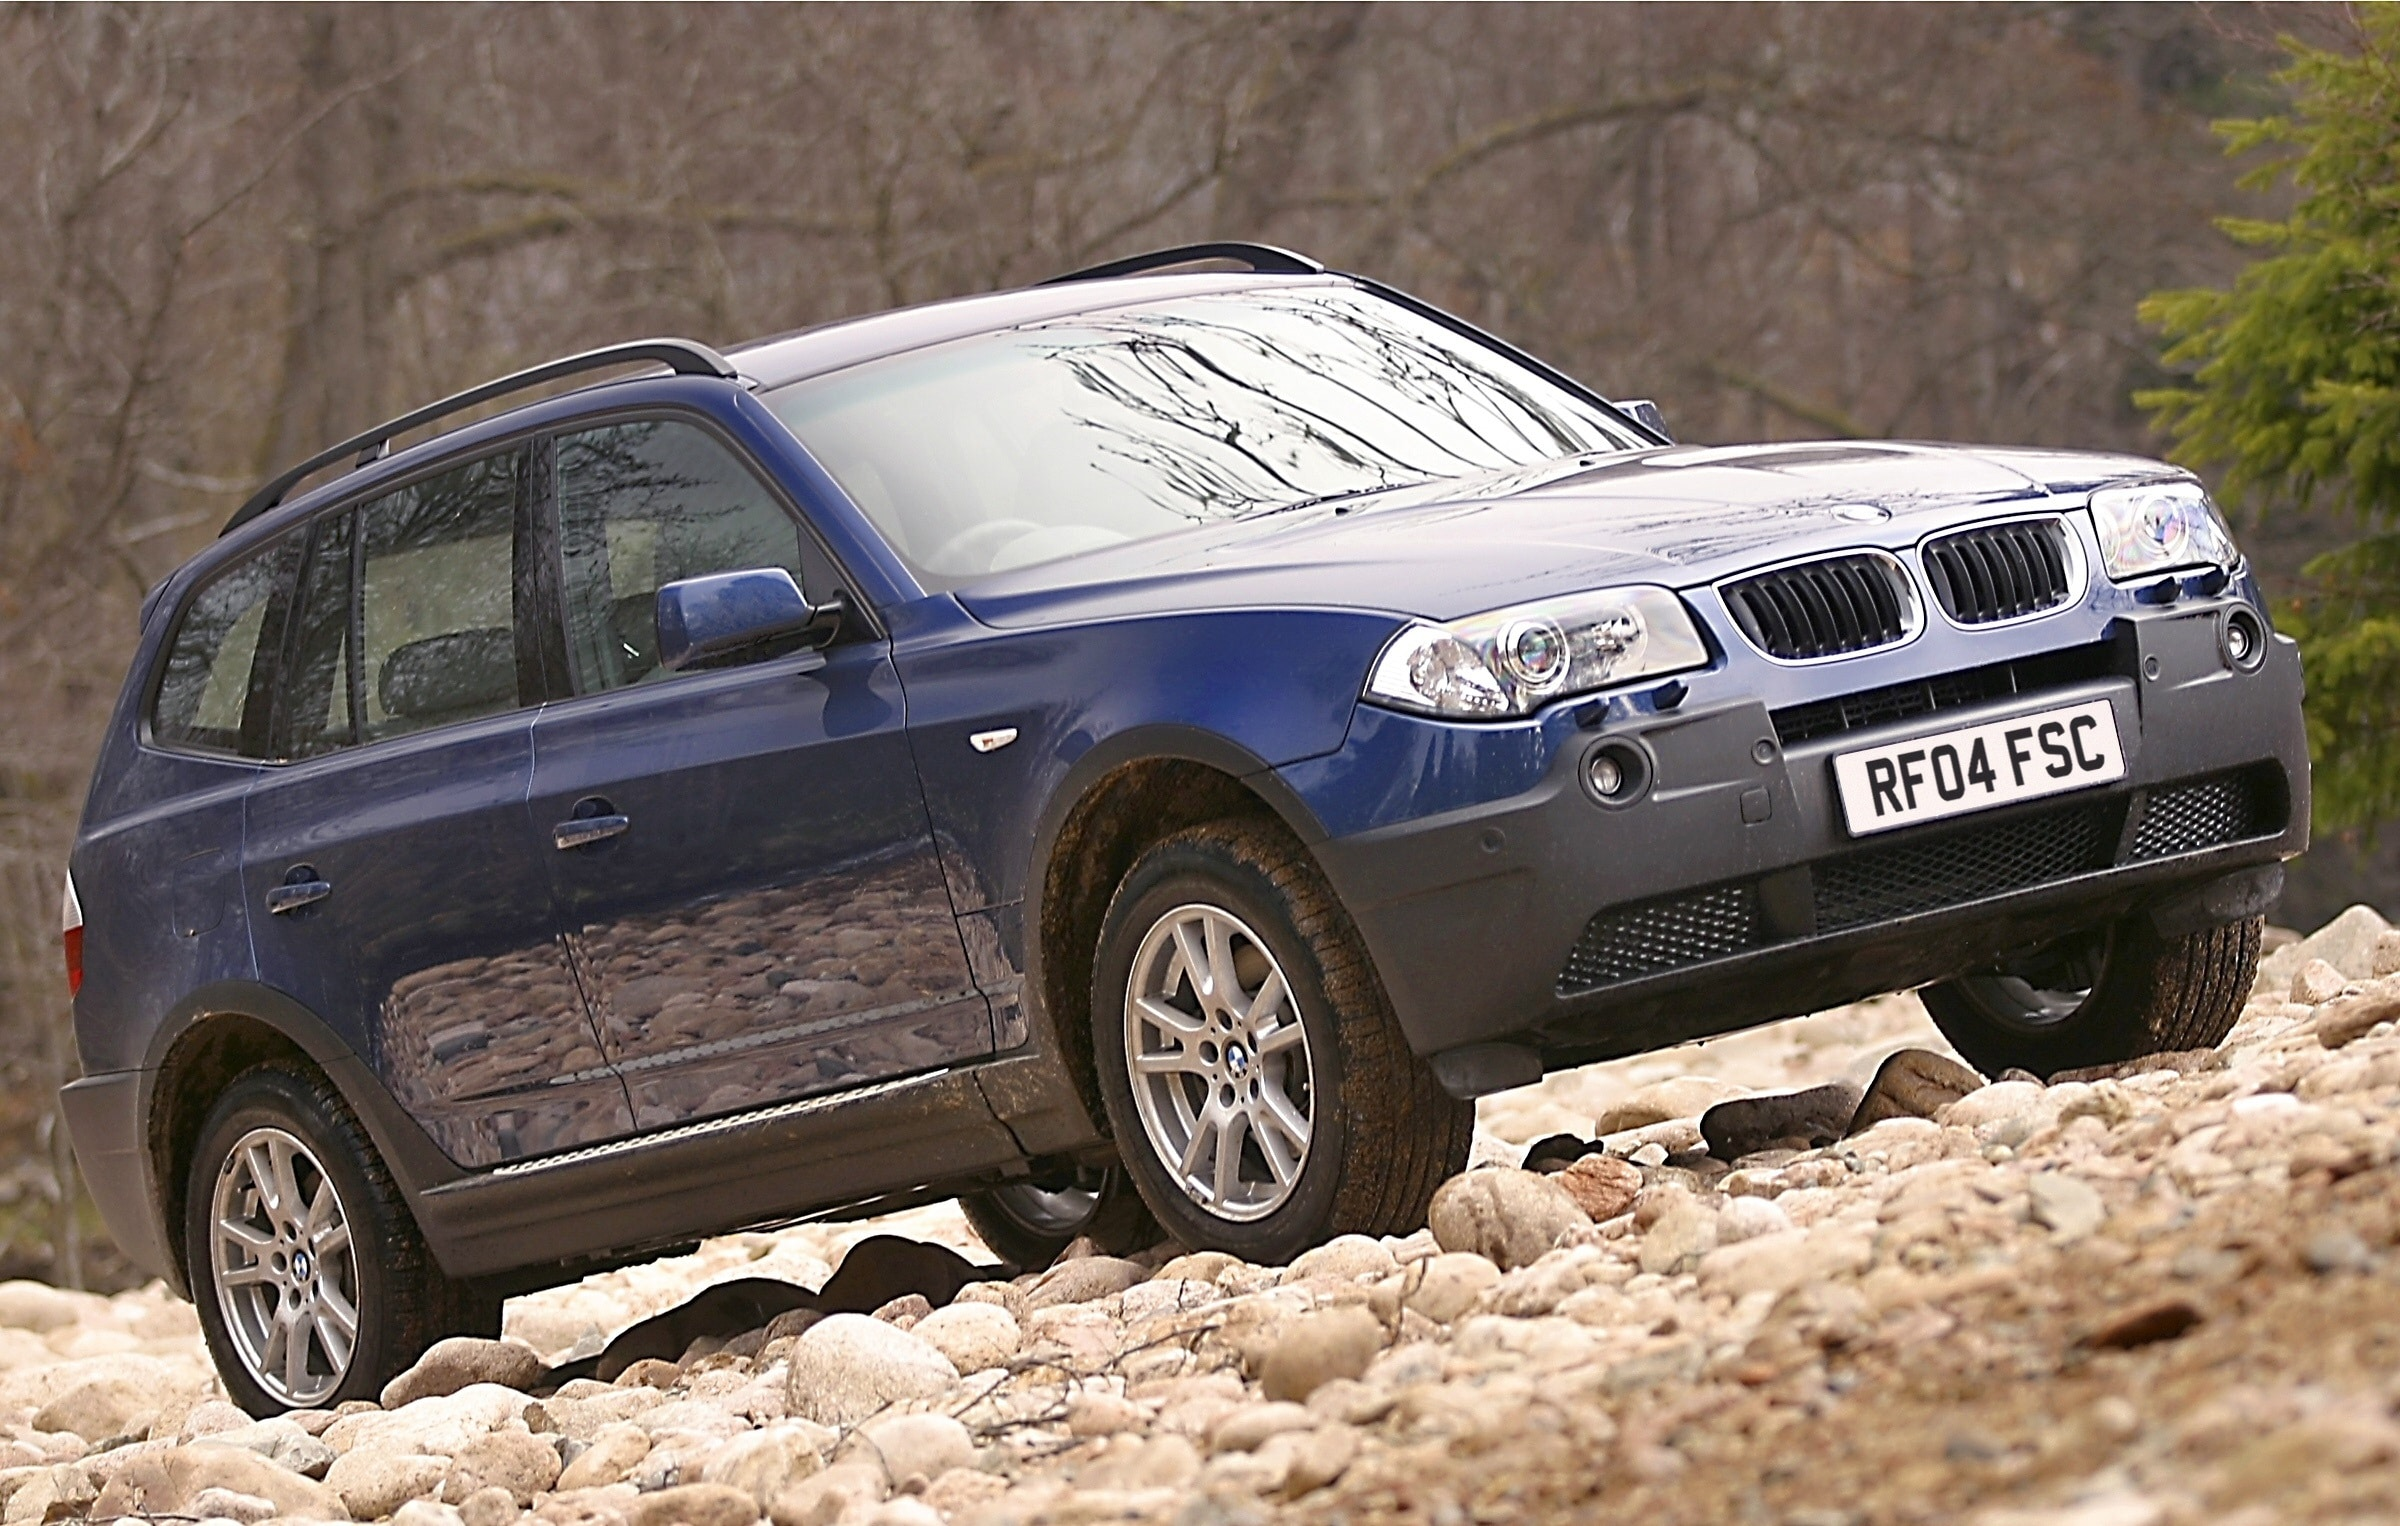 BMW X3, X3, BMW, X5, motoring, ebay motors, cars, classic car, retro car, motoring, automotive, used car, cheap car, bargain car, featured, car sales, buying guide, www.not2grand.co.uk, not2grand